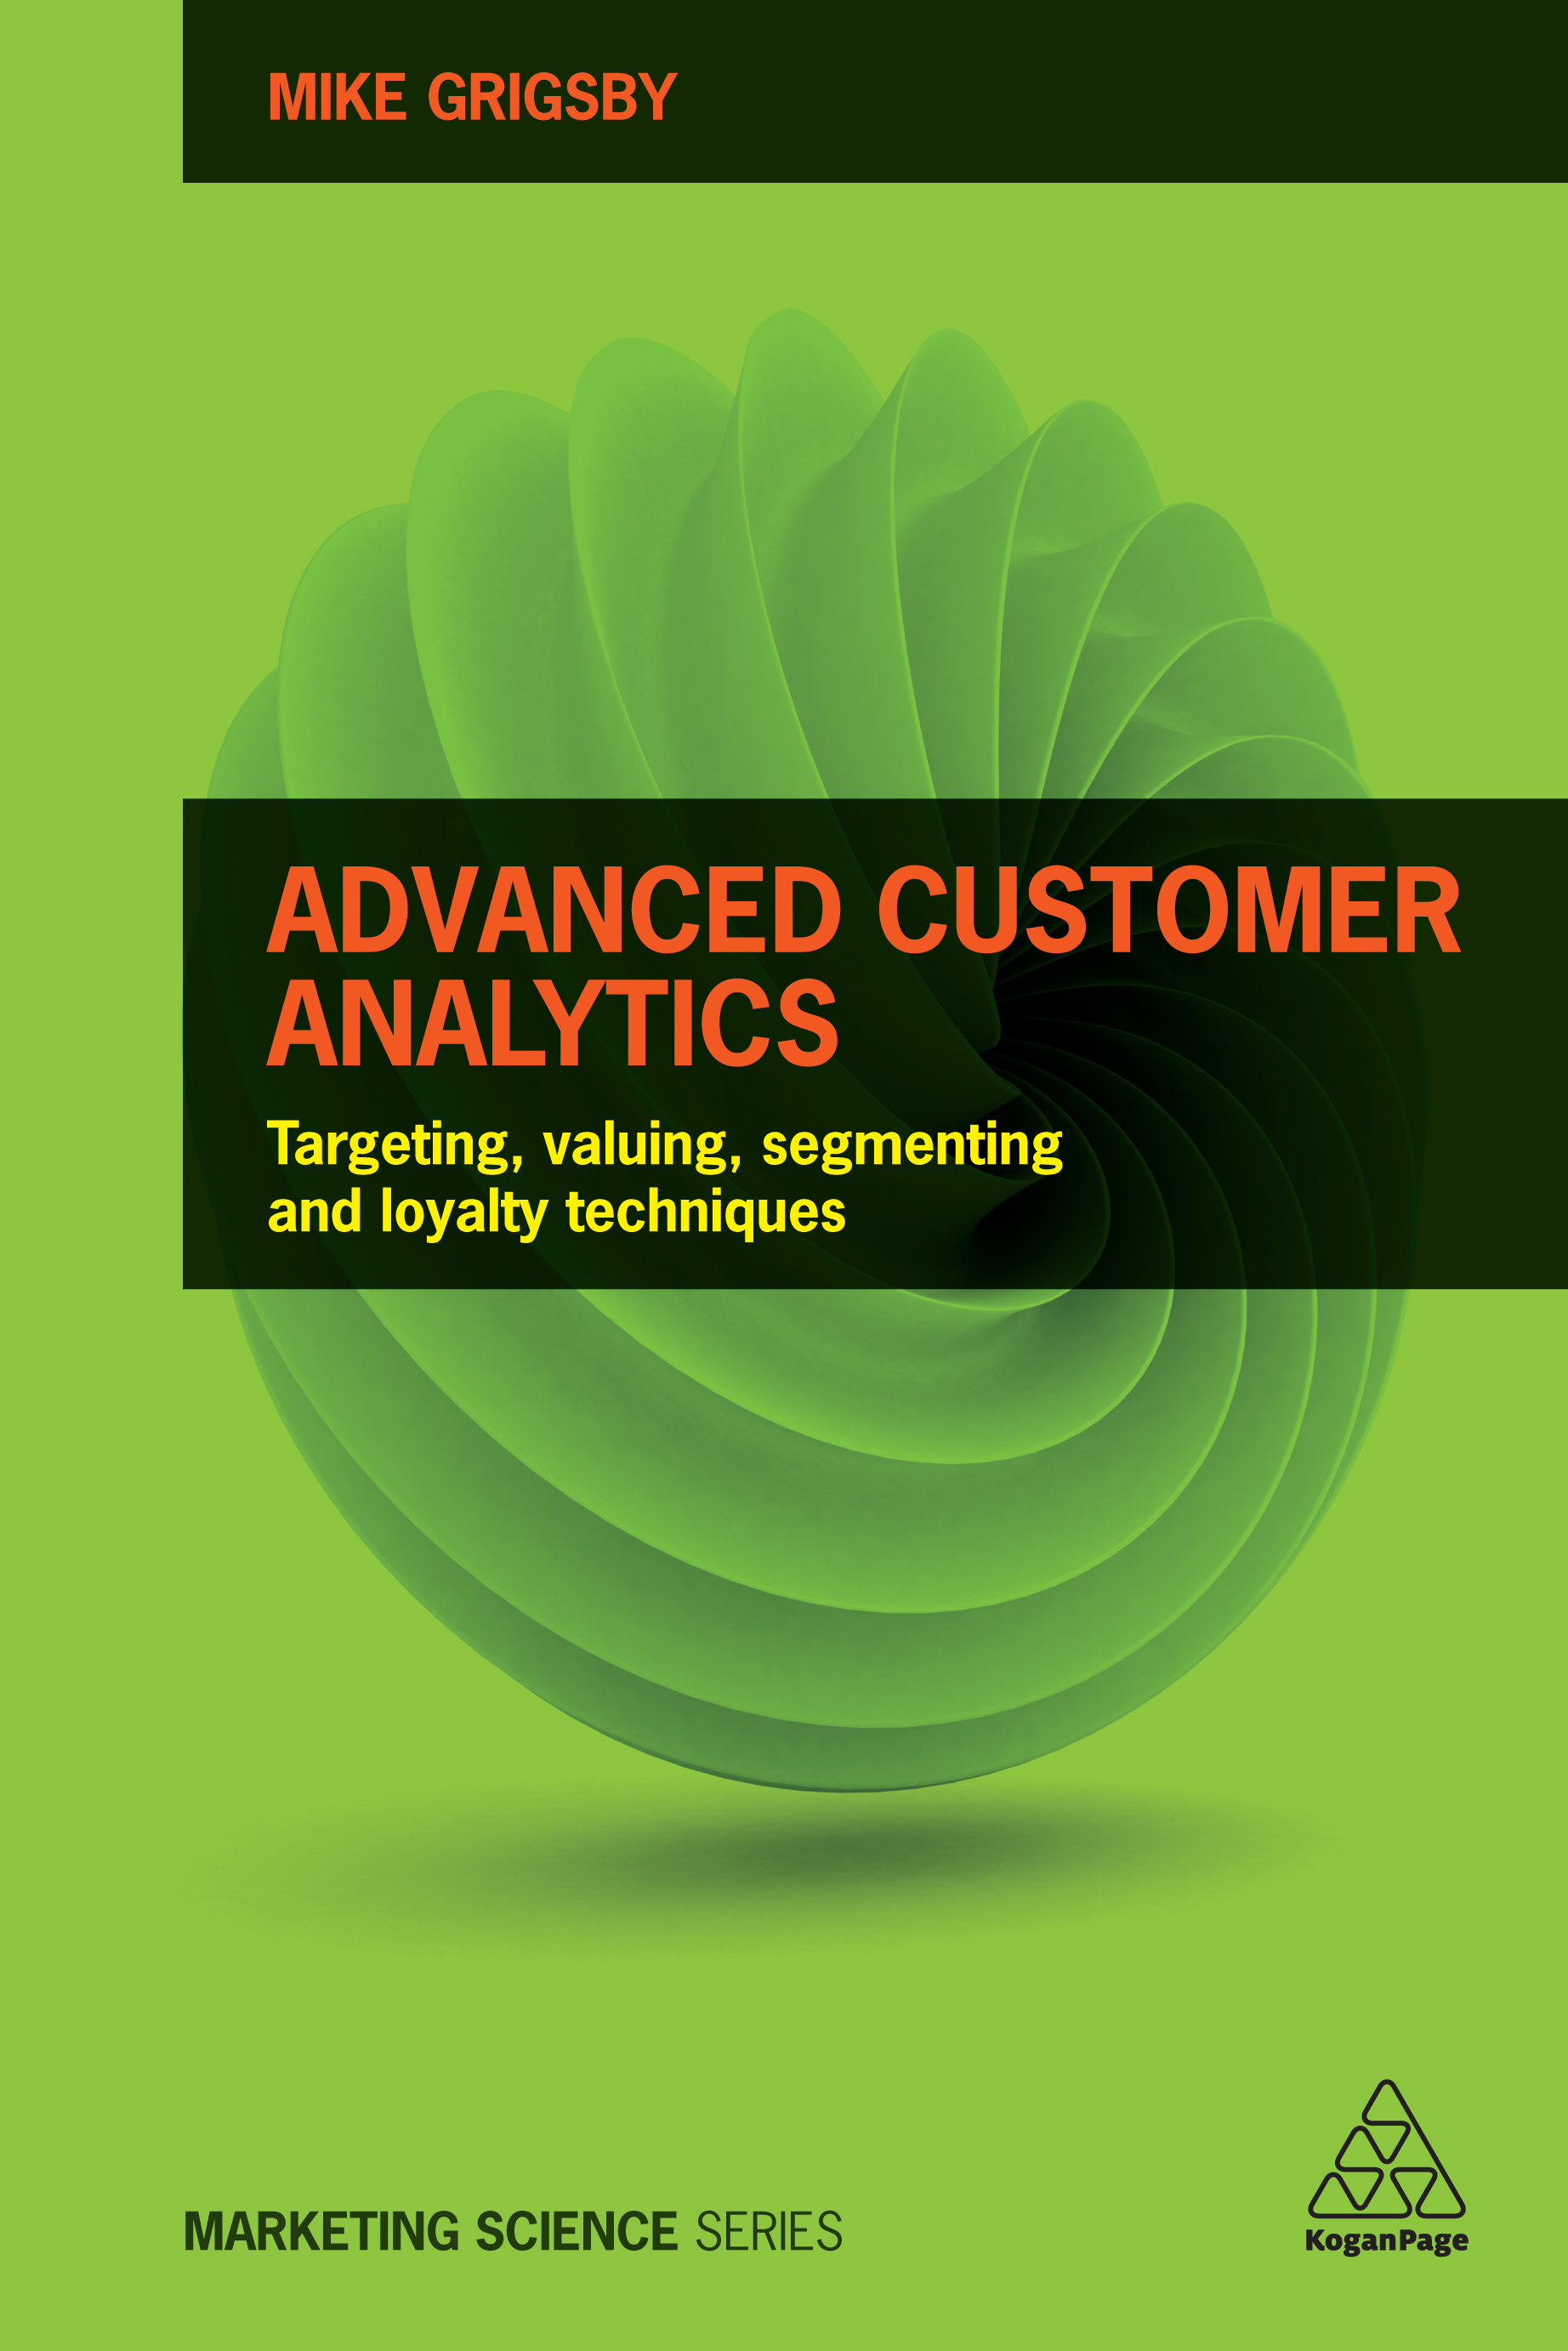 Download Ebook Advanced Customer Analytics by Mike Grigsby Pdf